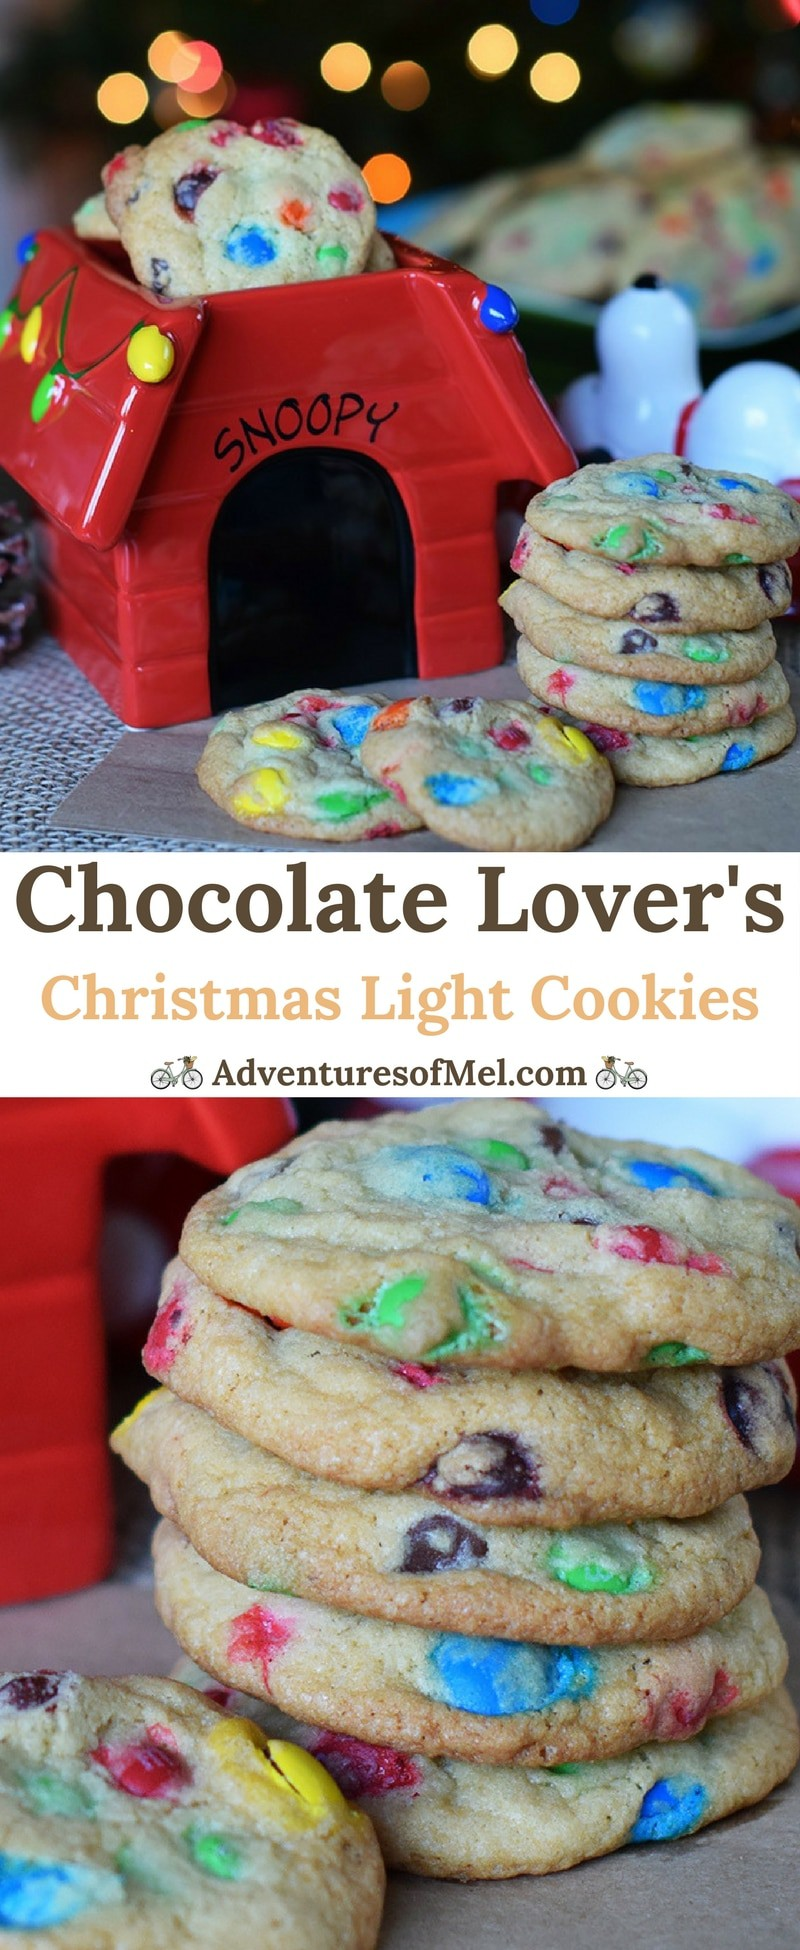 How to make a scrumptious holiday treat, Chocolate Lover's Christmas Light Cookies. Filled with M&M's, perfect for a Christmas party dessert!